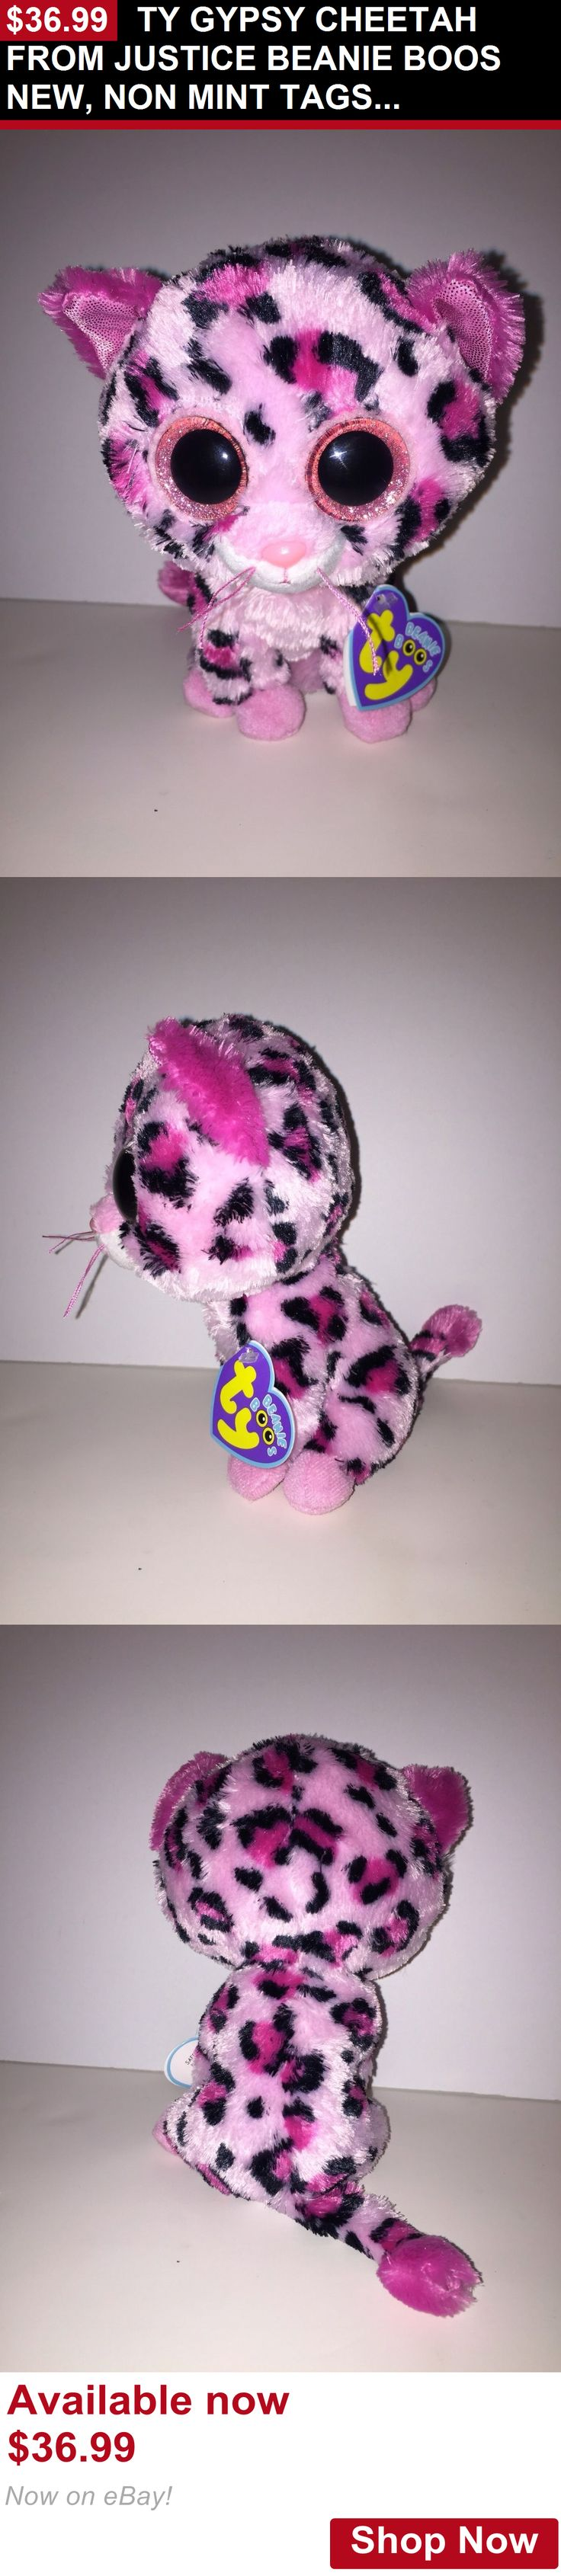 Binocular Cases And Accessories: Ty Gypsy Cheetah From Justice Beanie Boos New, Non Mint Tags,Hard To Find*Cute BUY IT NOW ONLY: $36.99